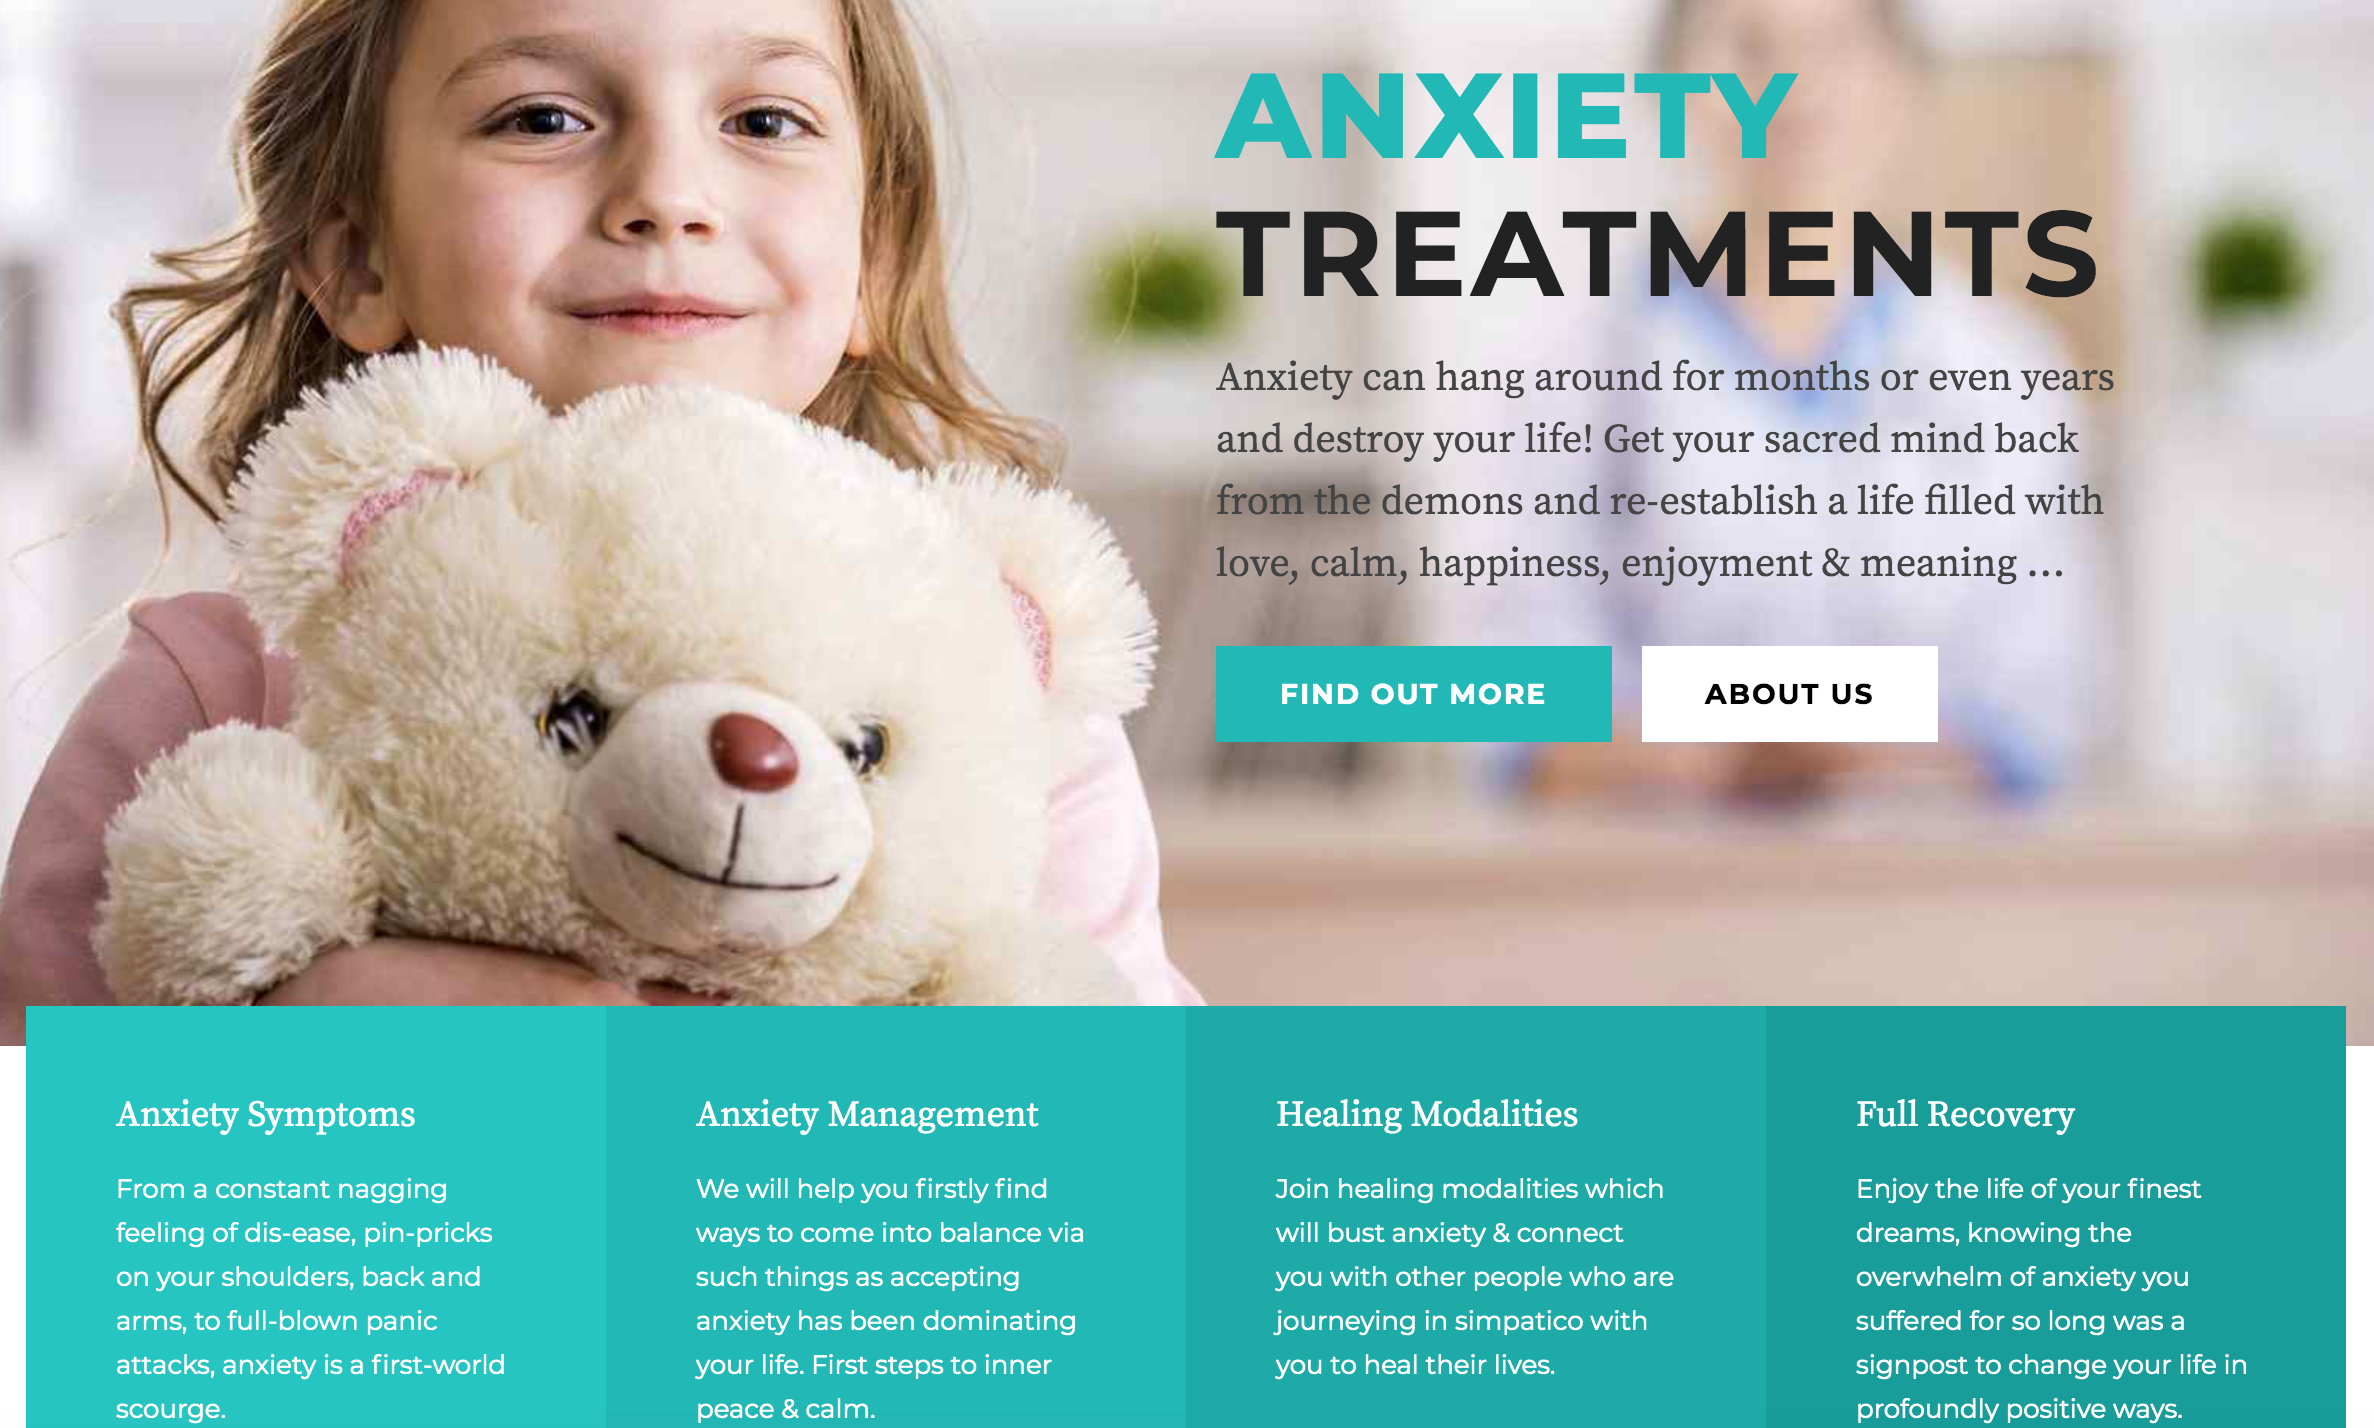 anxiety treatment website sydney melbourne brisbane perth canberra